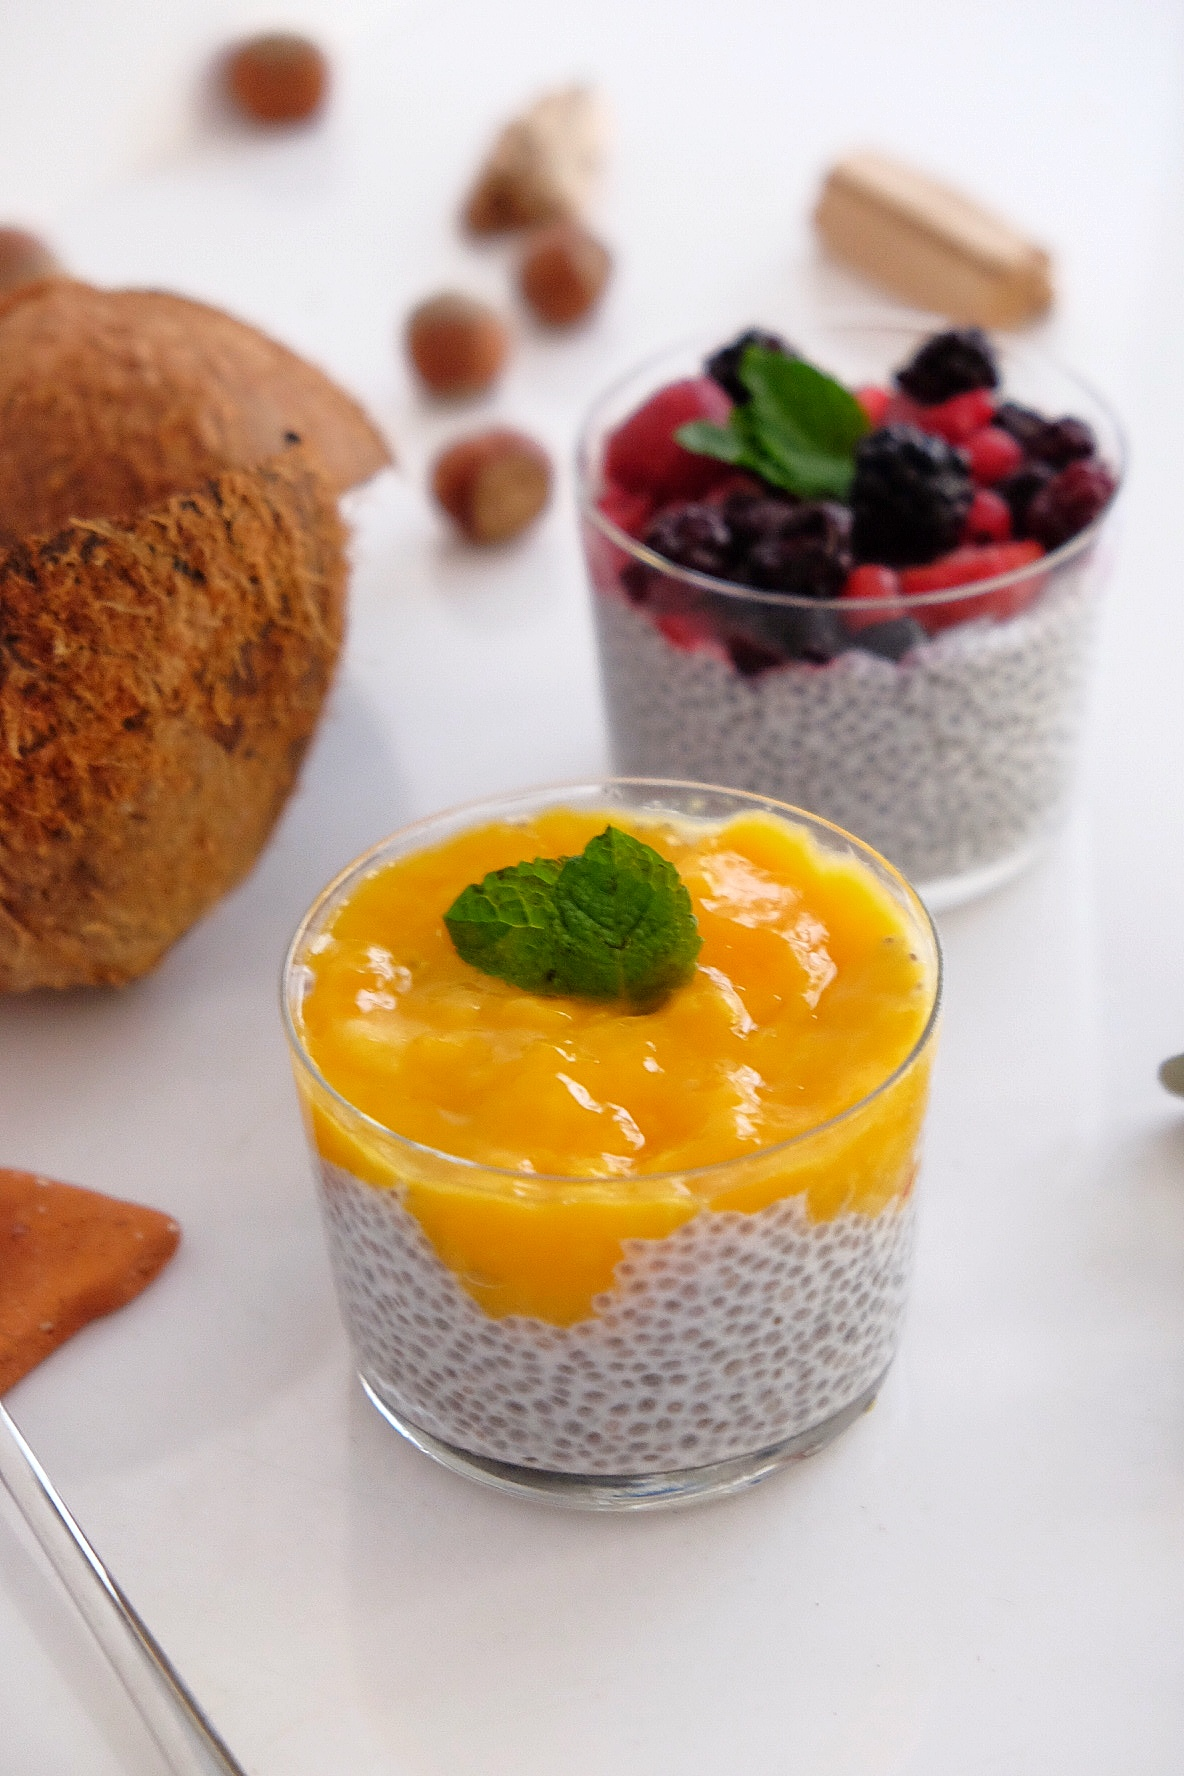 Chia pudding with coconut milk